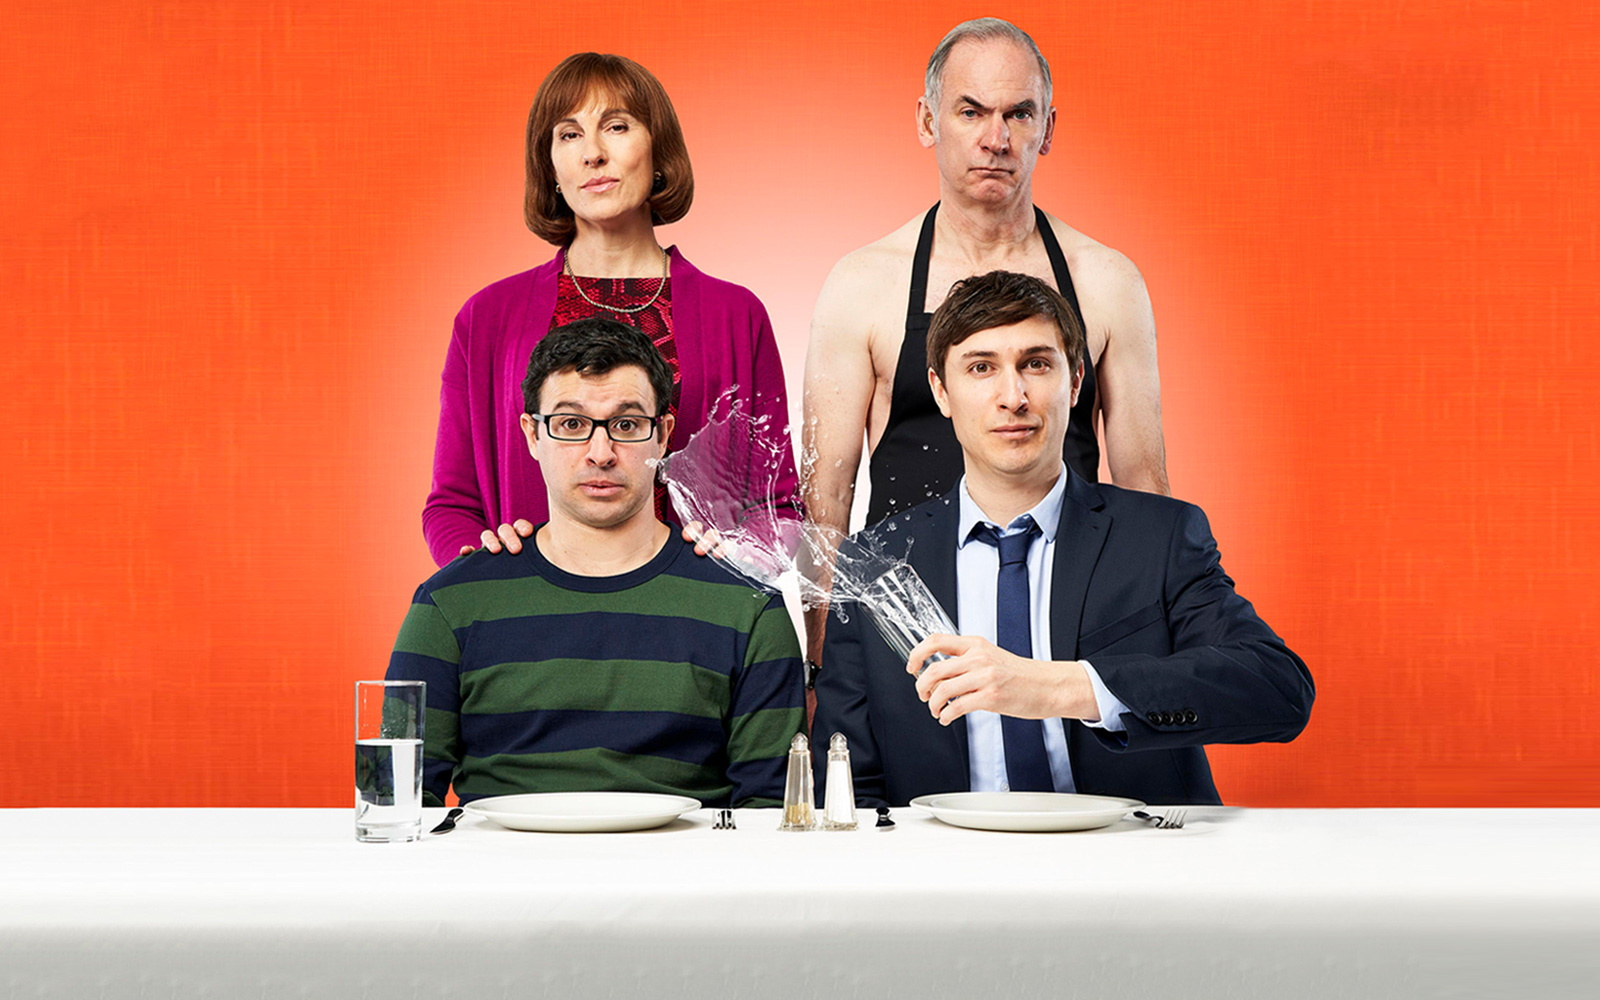 Friday Night Dinner Returns To Channel 4